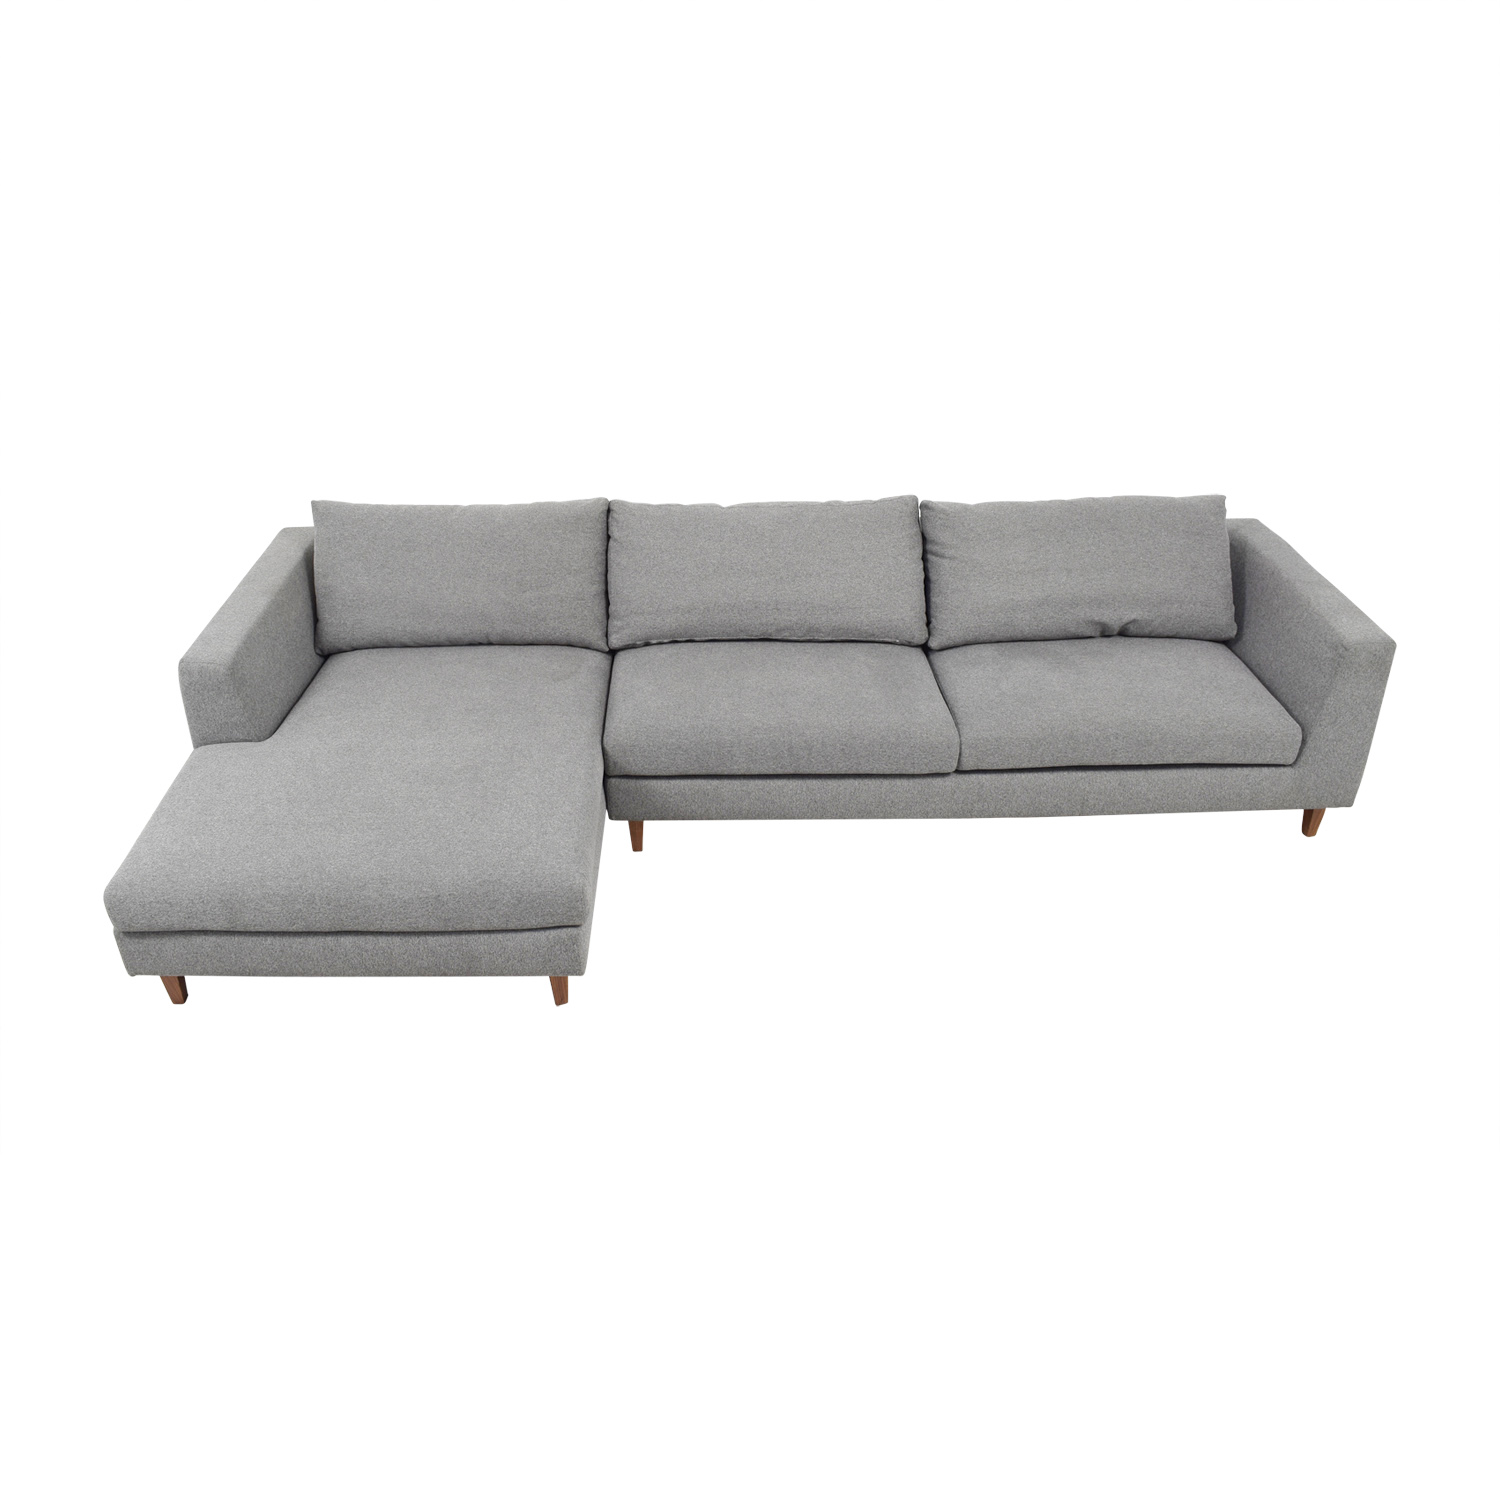 buy  Asher Heather Performance Felt Left Chaise Sectional online